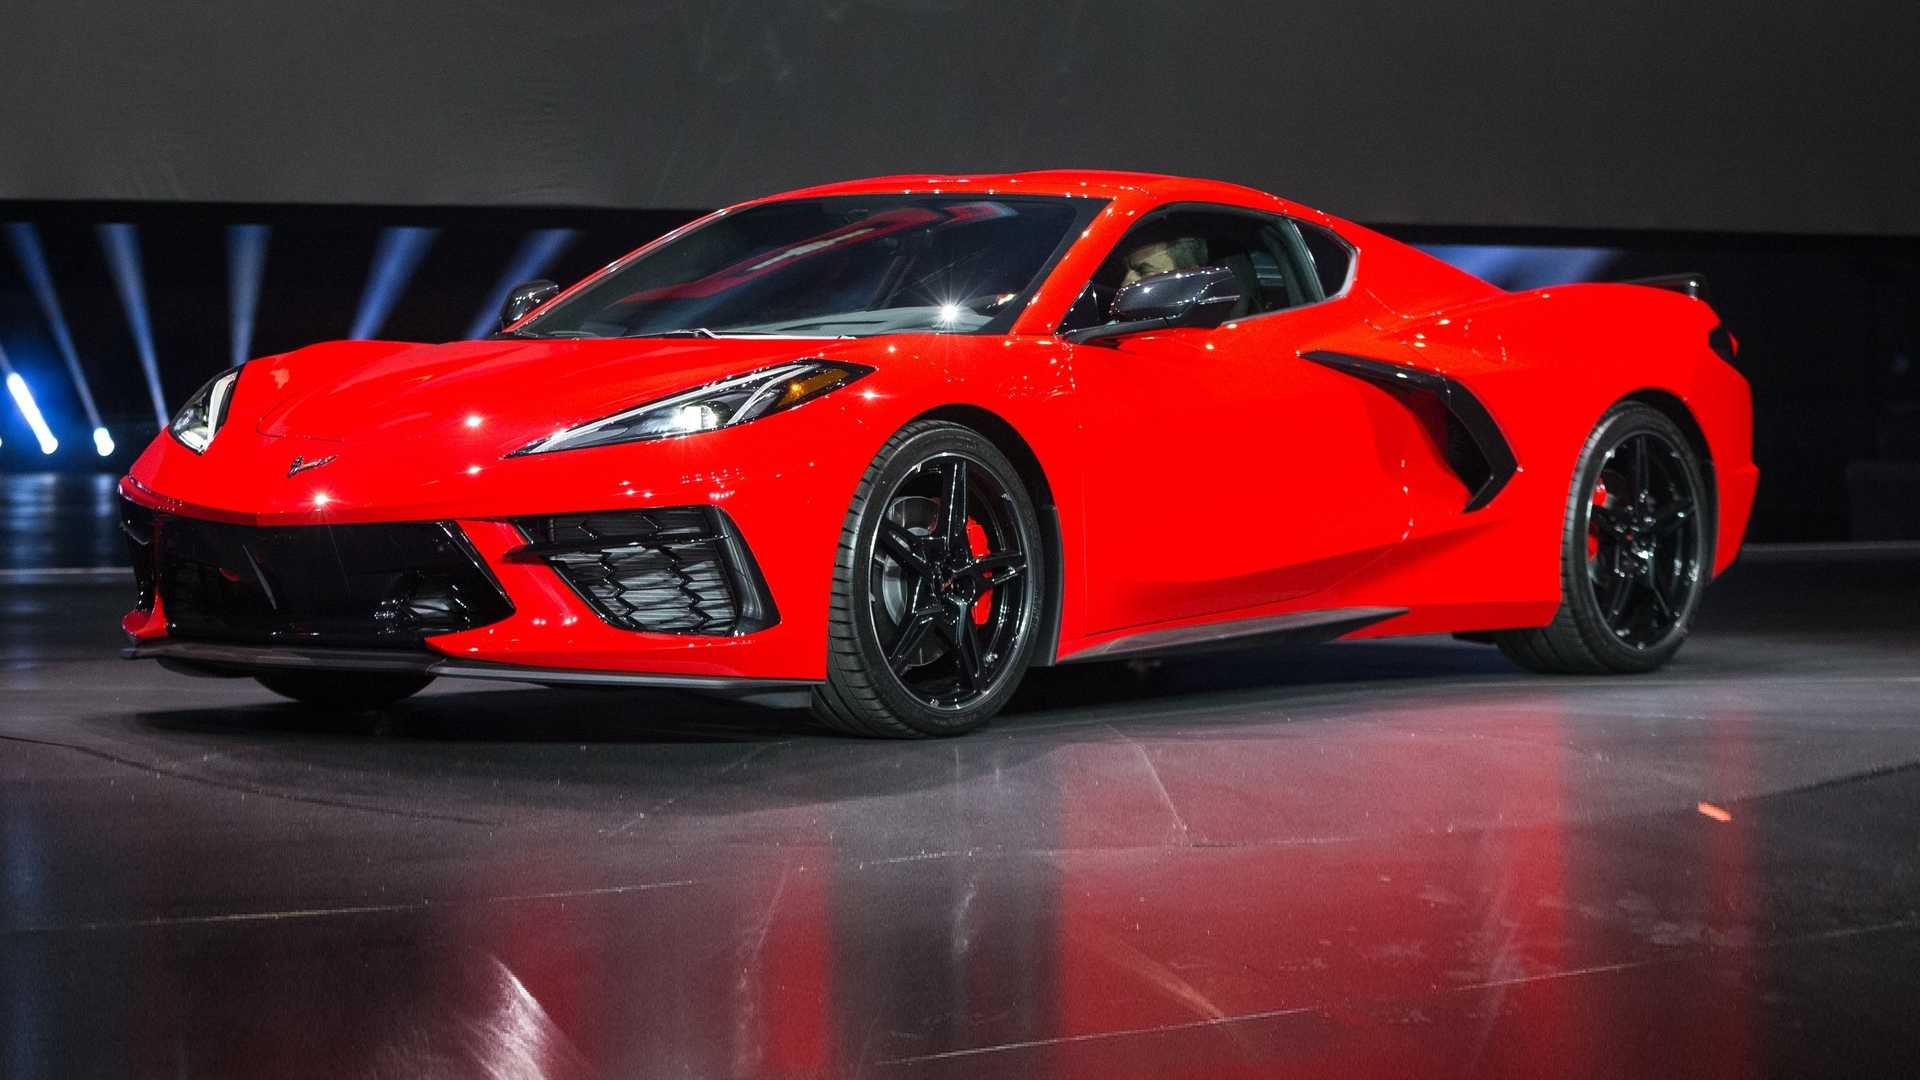 New Corvette Stingray >> 2020 Chevy Corvette Will Likely Go To Nurburgring Vir To Set Lap Times